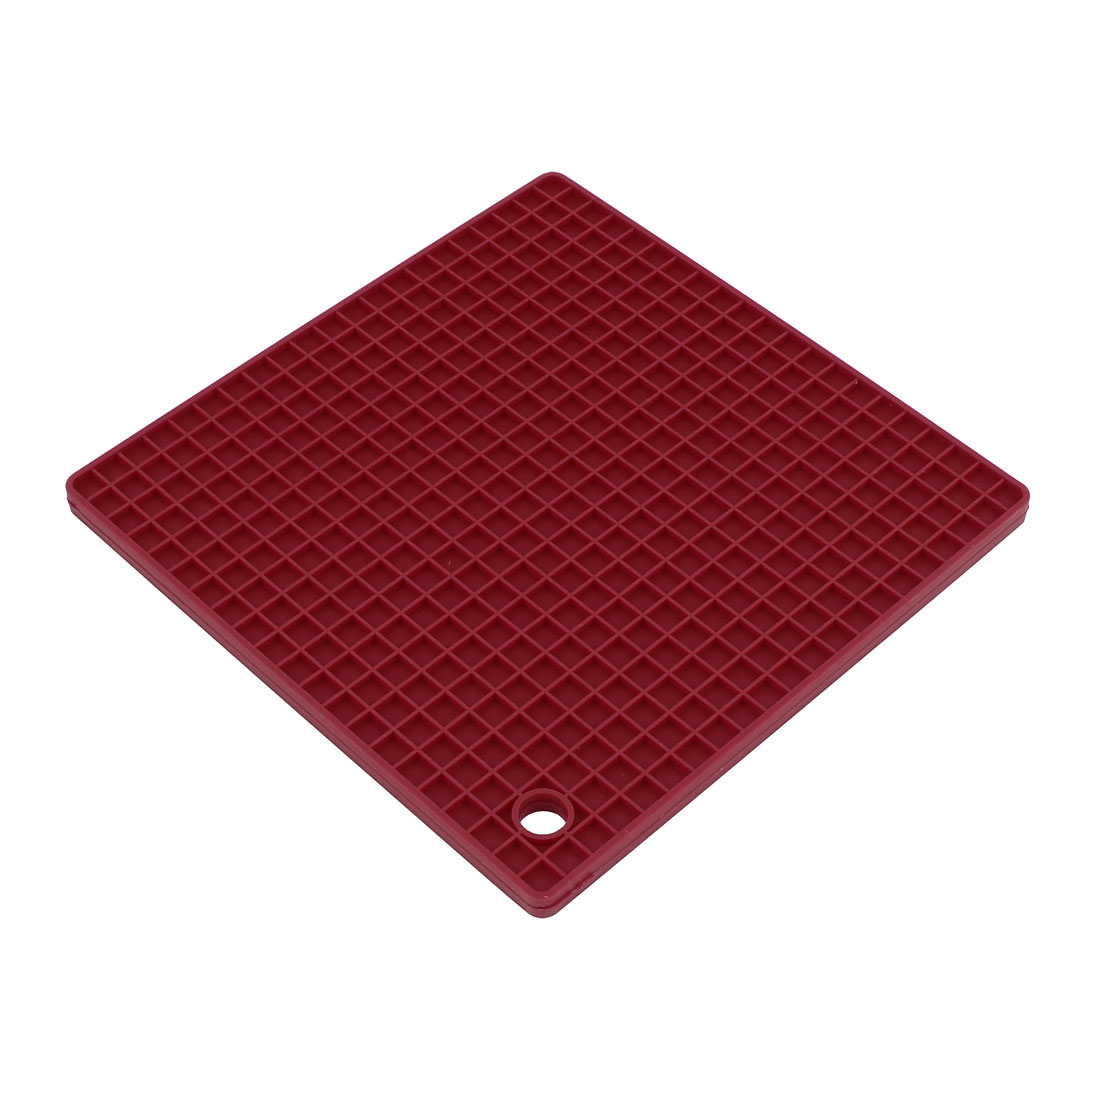 Kitchen Silicone Square Shaped Antislip Heat Resistant Pad Mat Dark Red